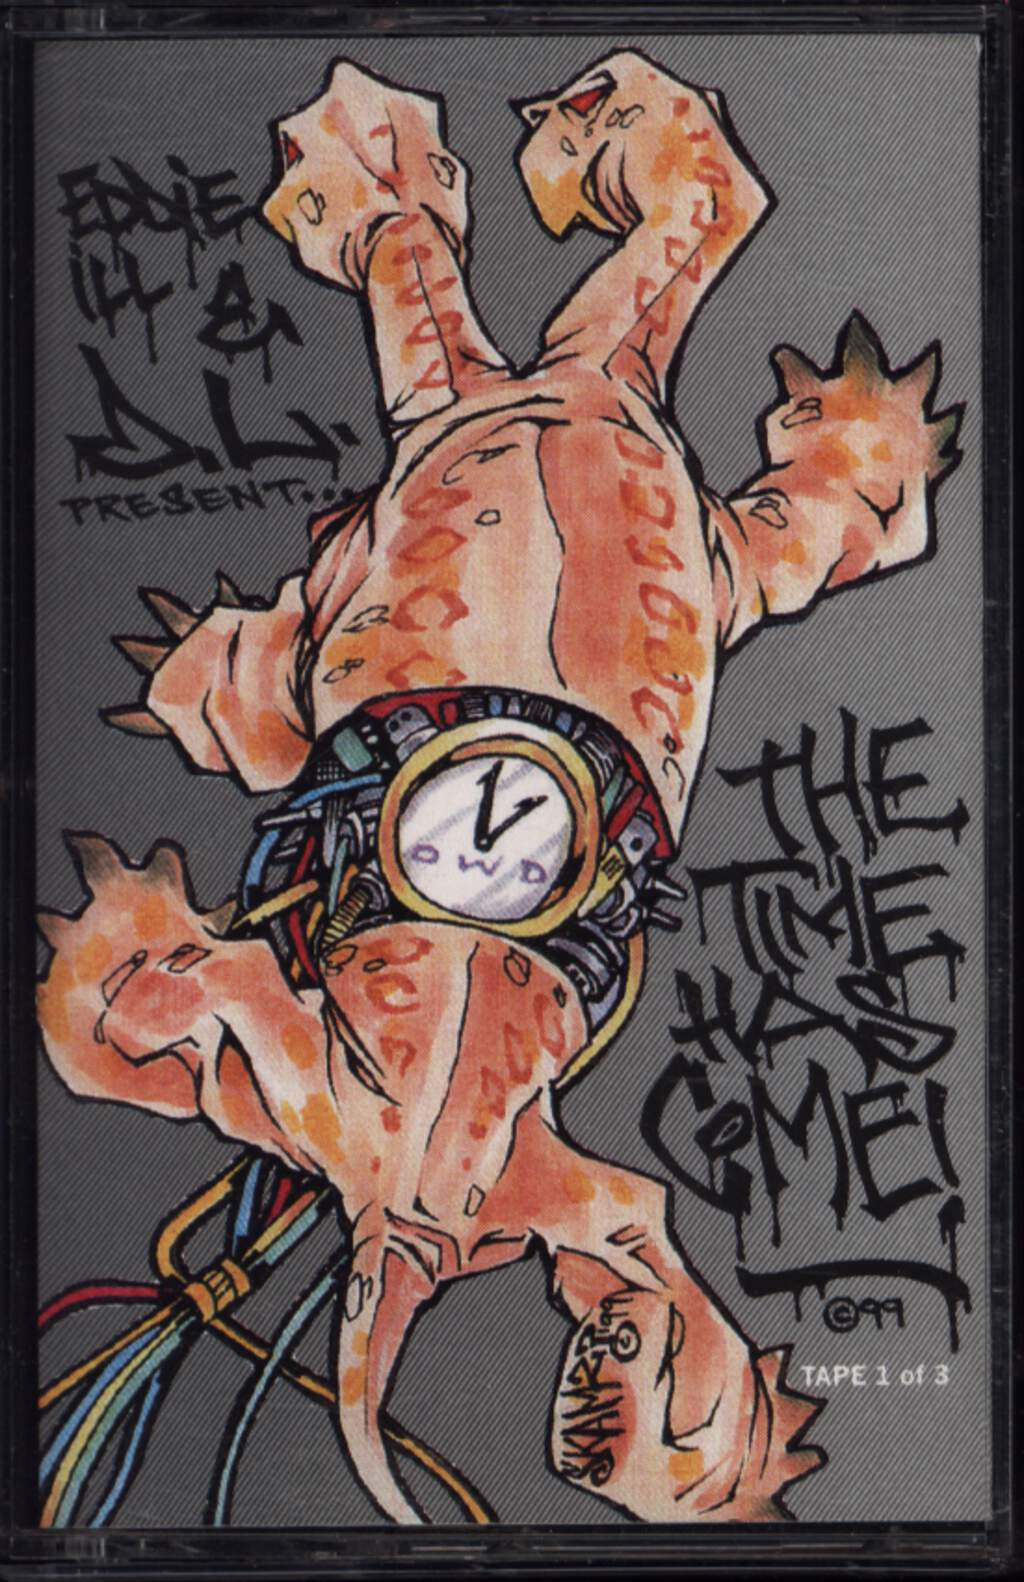 Eddie Ill And D.L.: The Time Has Come (Tape 1 Of 3), Compact Cassette